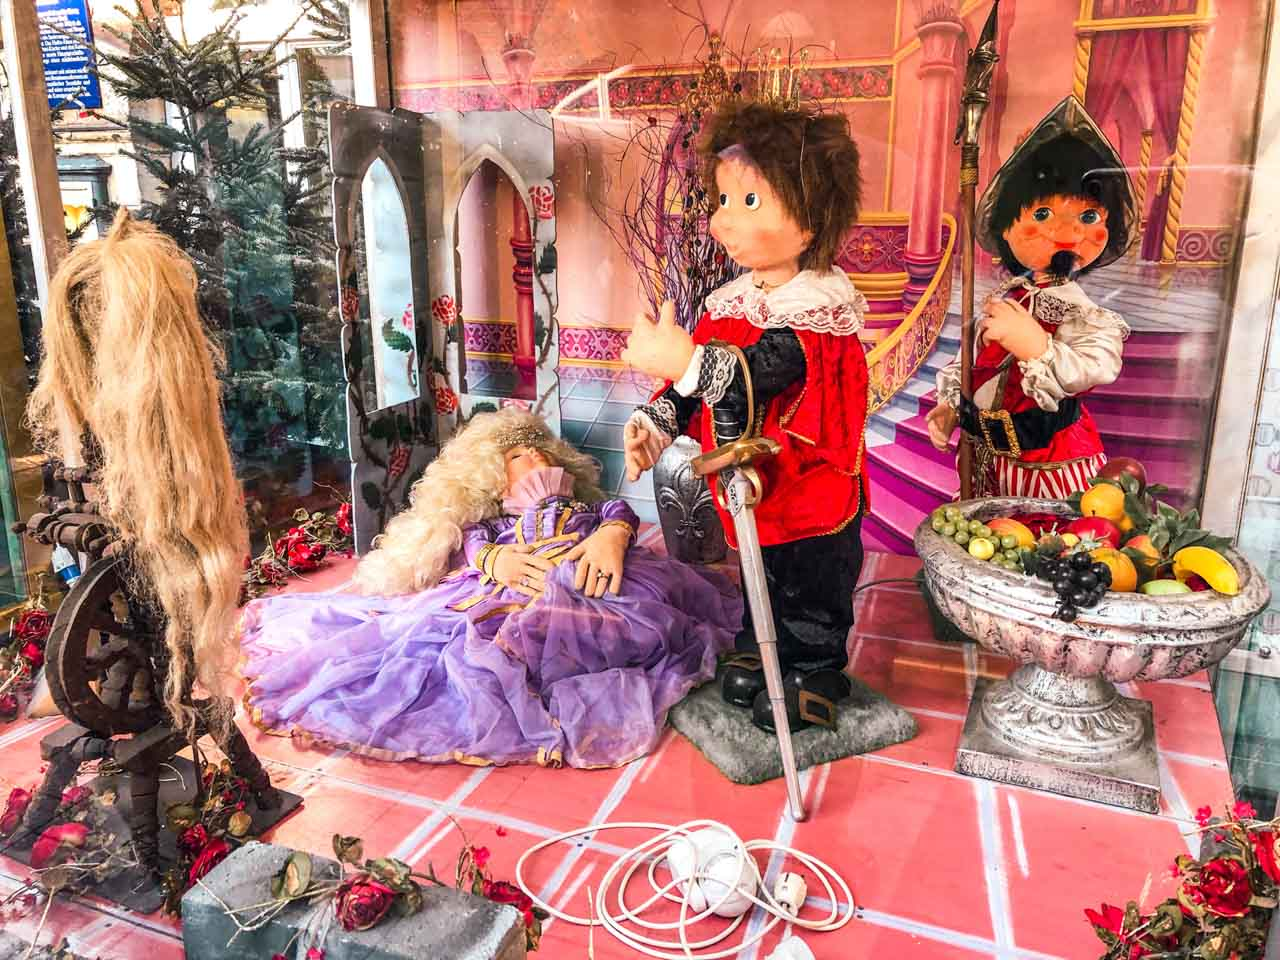 Dolls recreating the Sleeping Beauty fairytale at a Christmas market in Hamburg